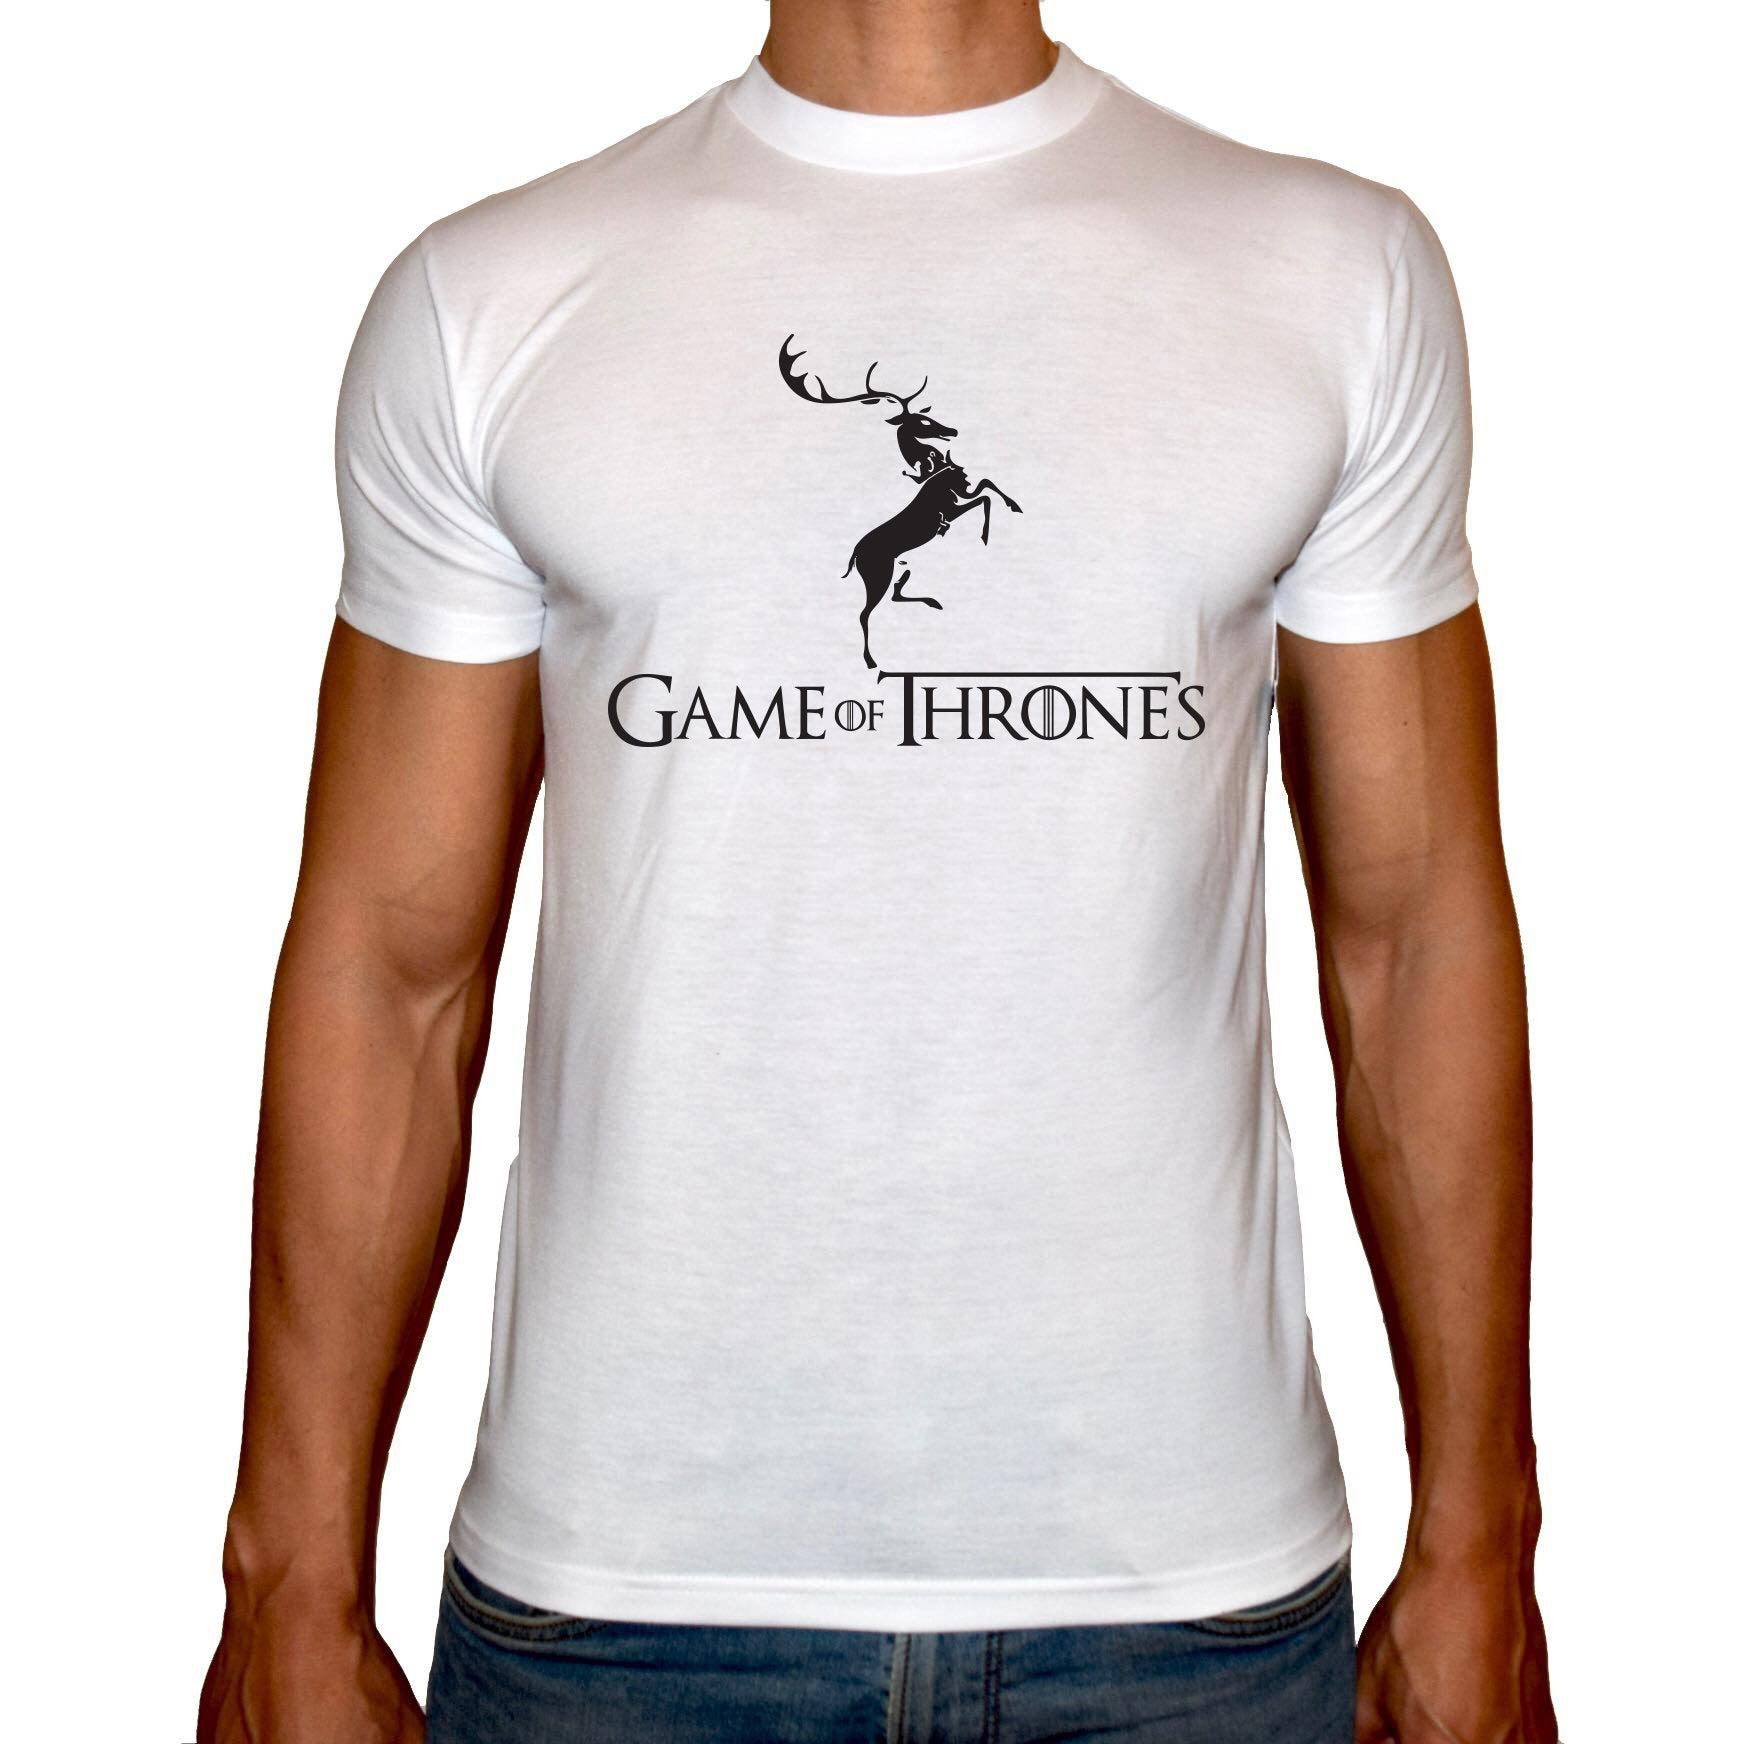 Phoenix WHITE Round Neck Printed T-Shirt Men (Game of thrones)